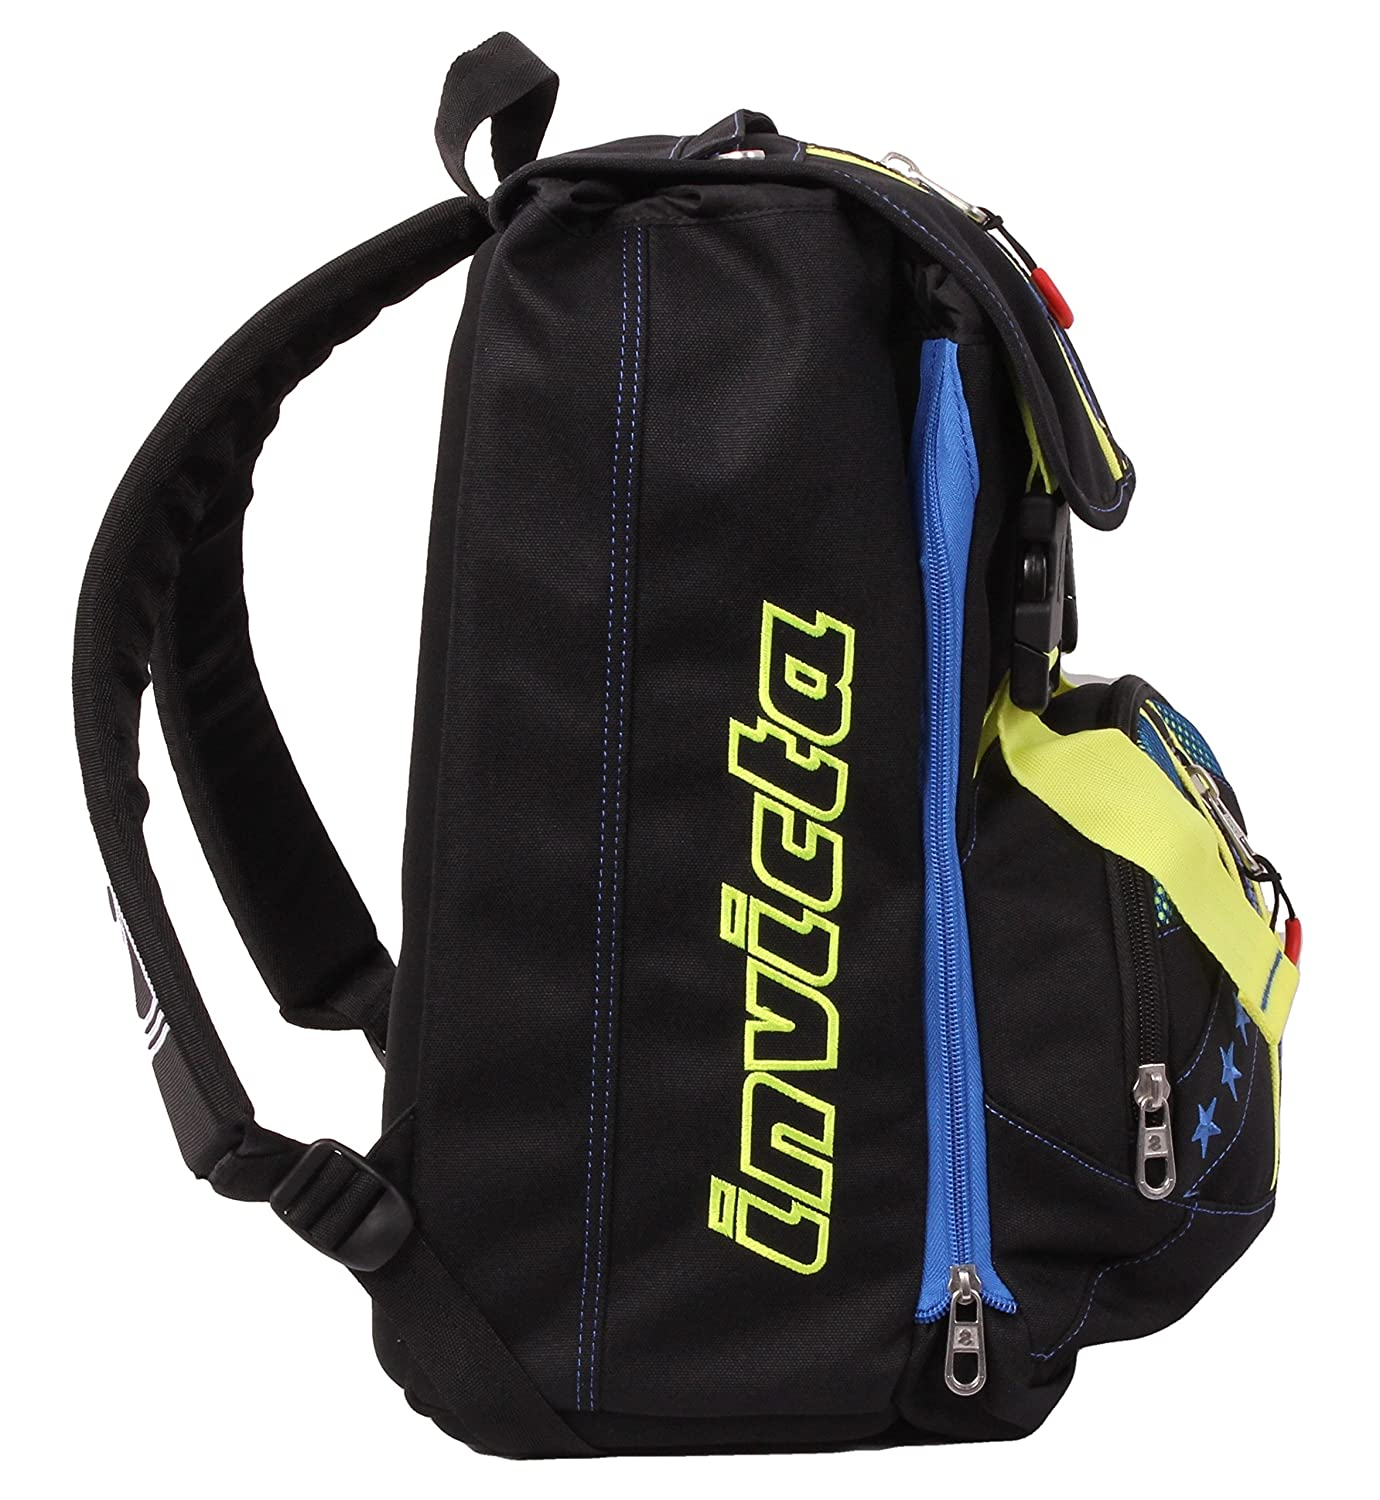 Amazon.com : Doubling backpack - INVICTA KUPANG - Black - Expandable 28 liters school student : Baby